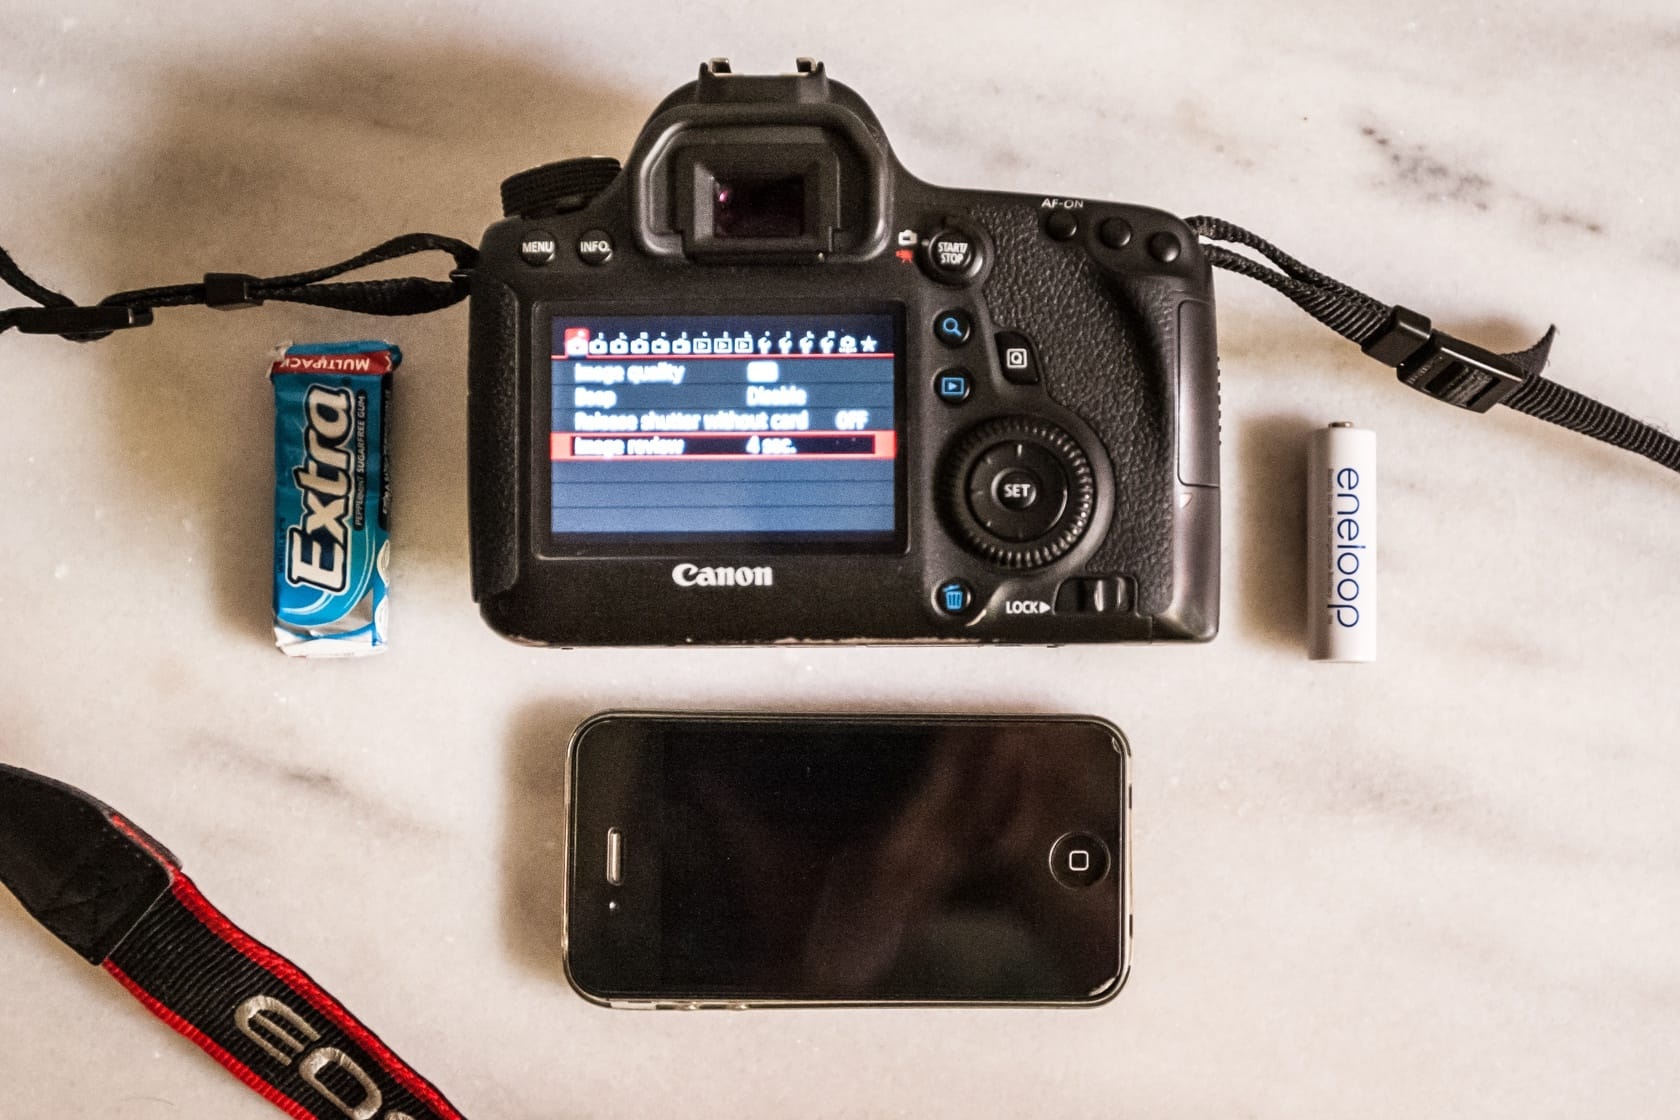 The Canon 6D compared to other objects